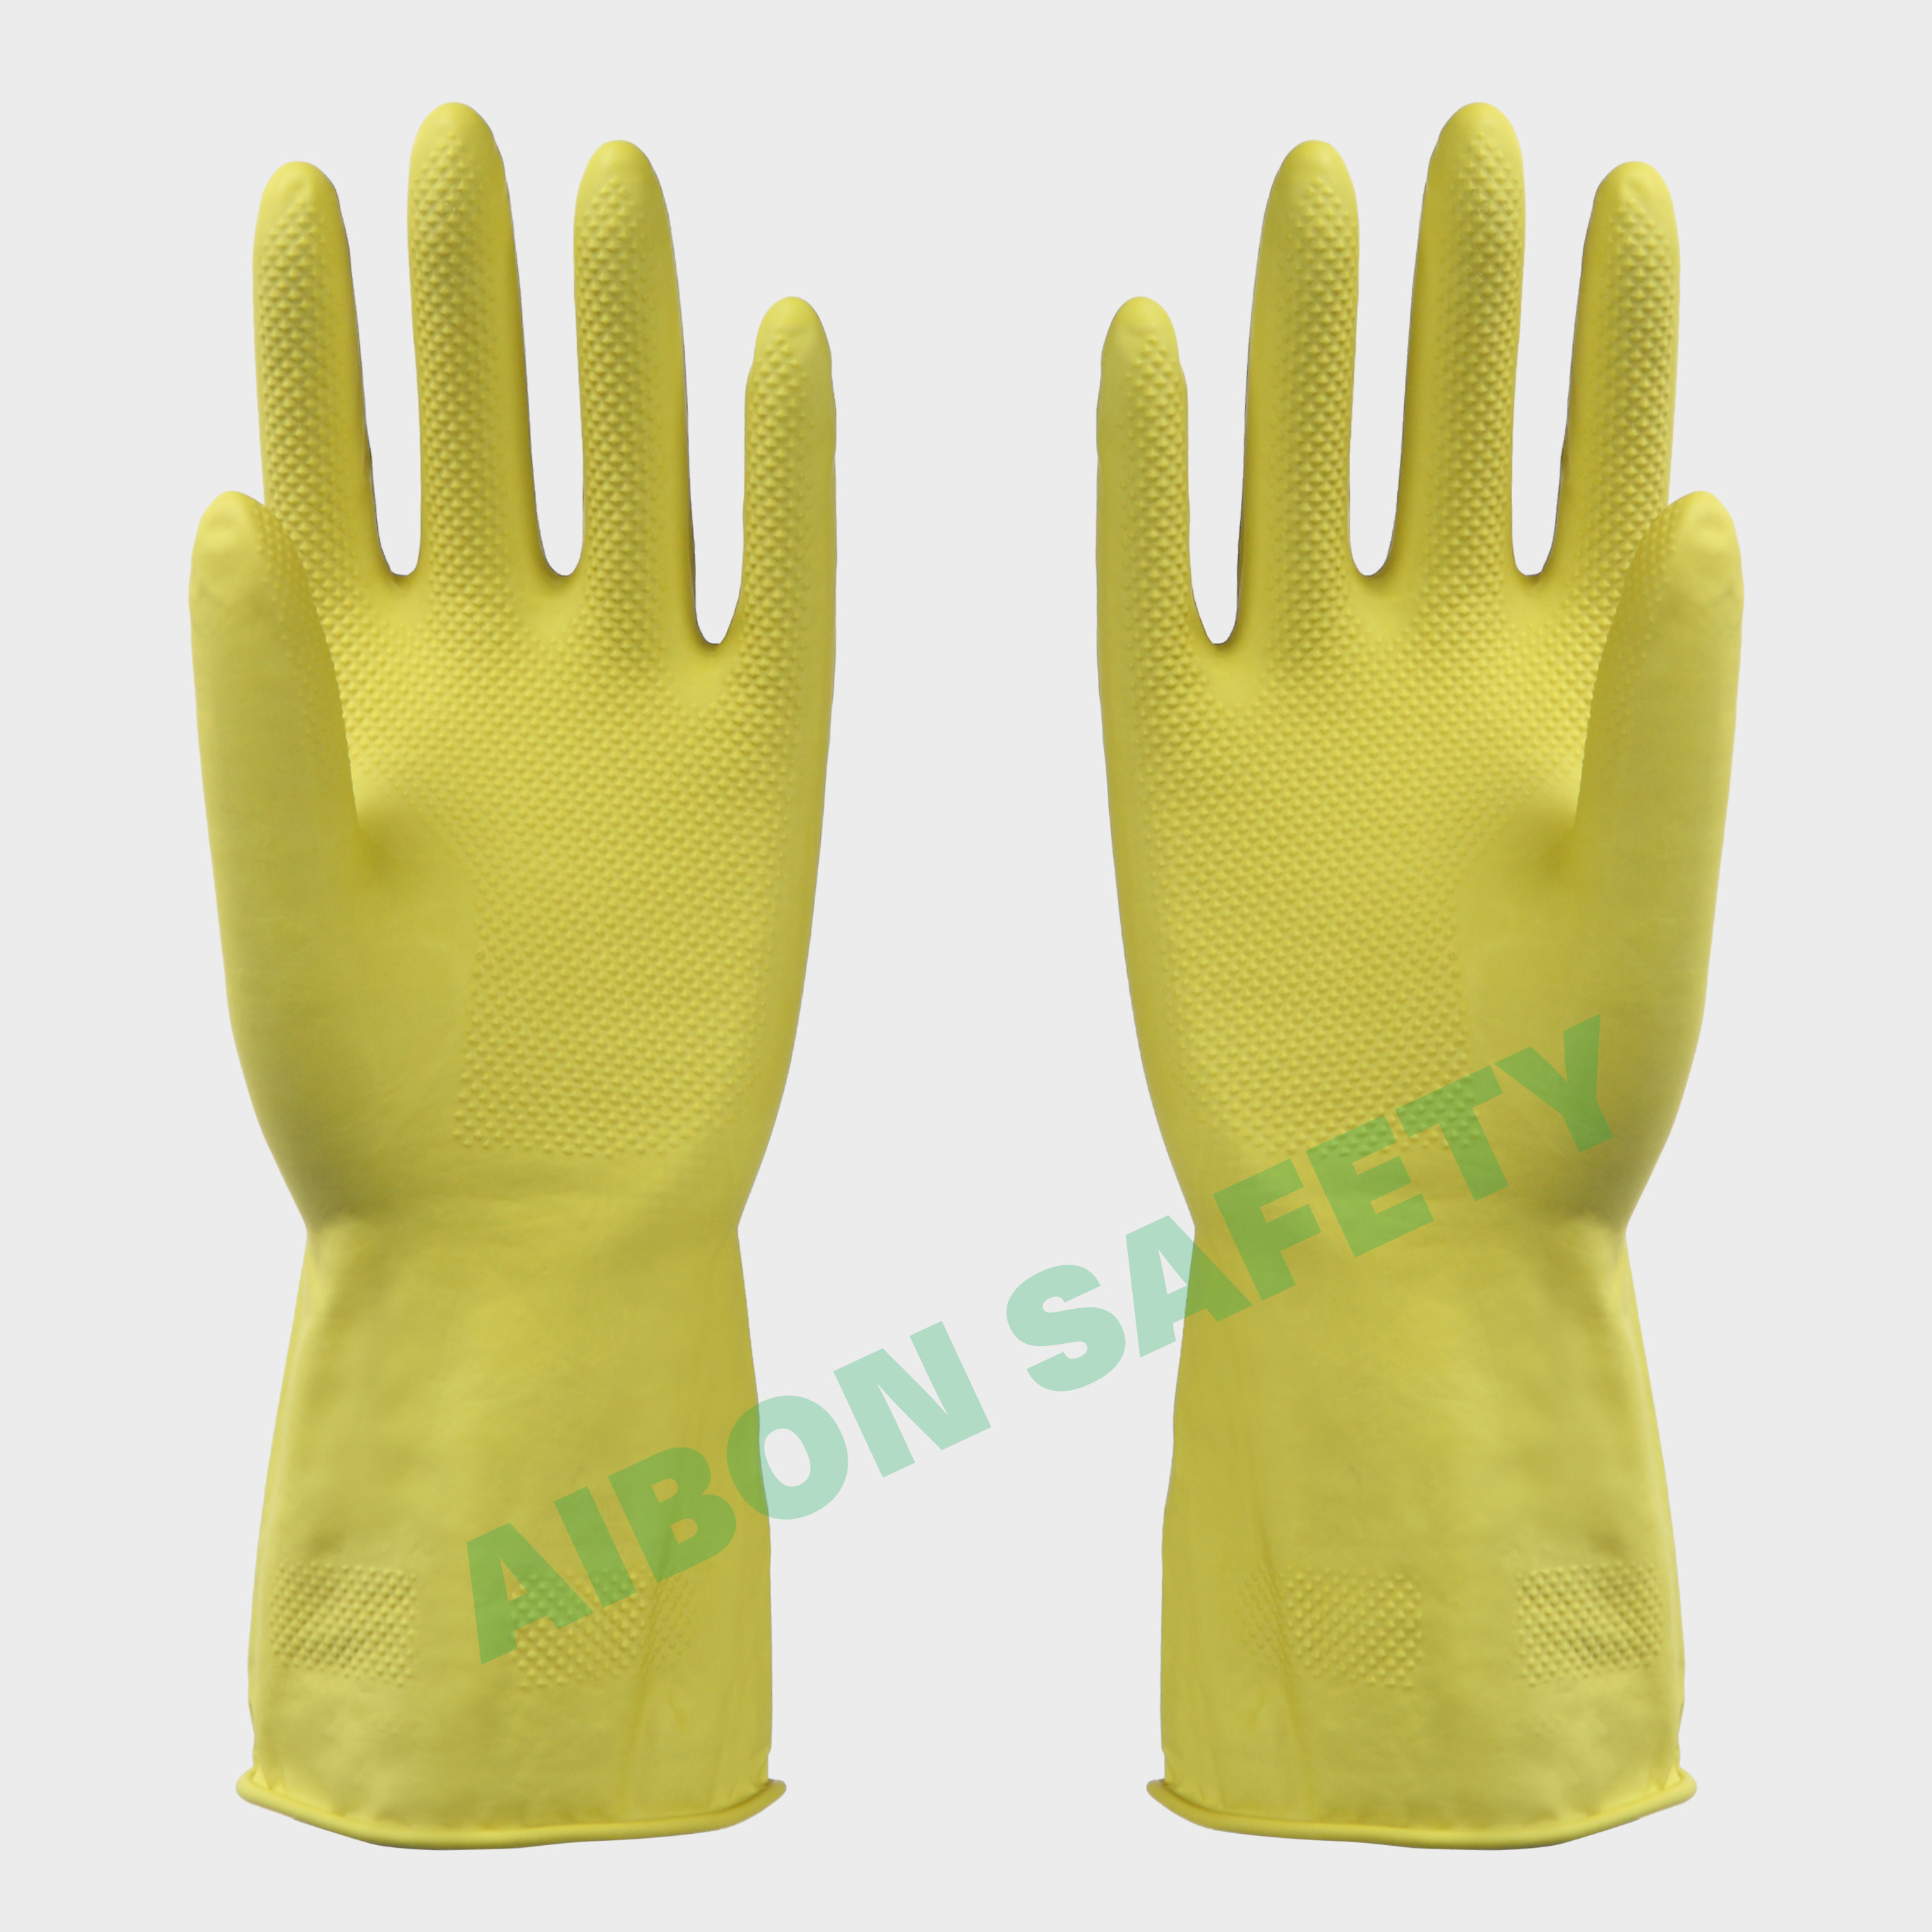 rubber safety hand glove